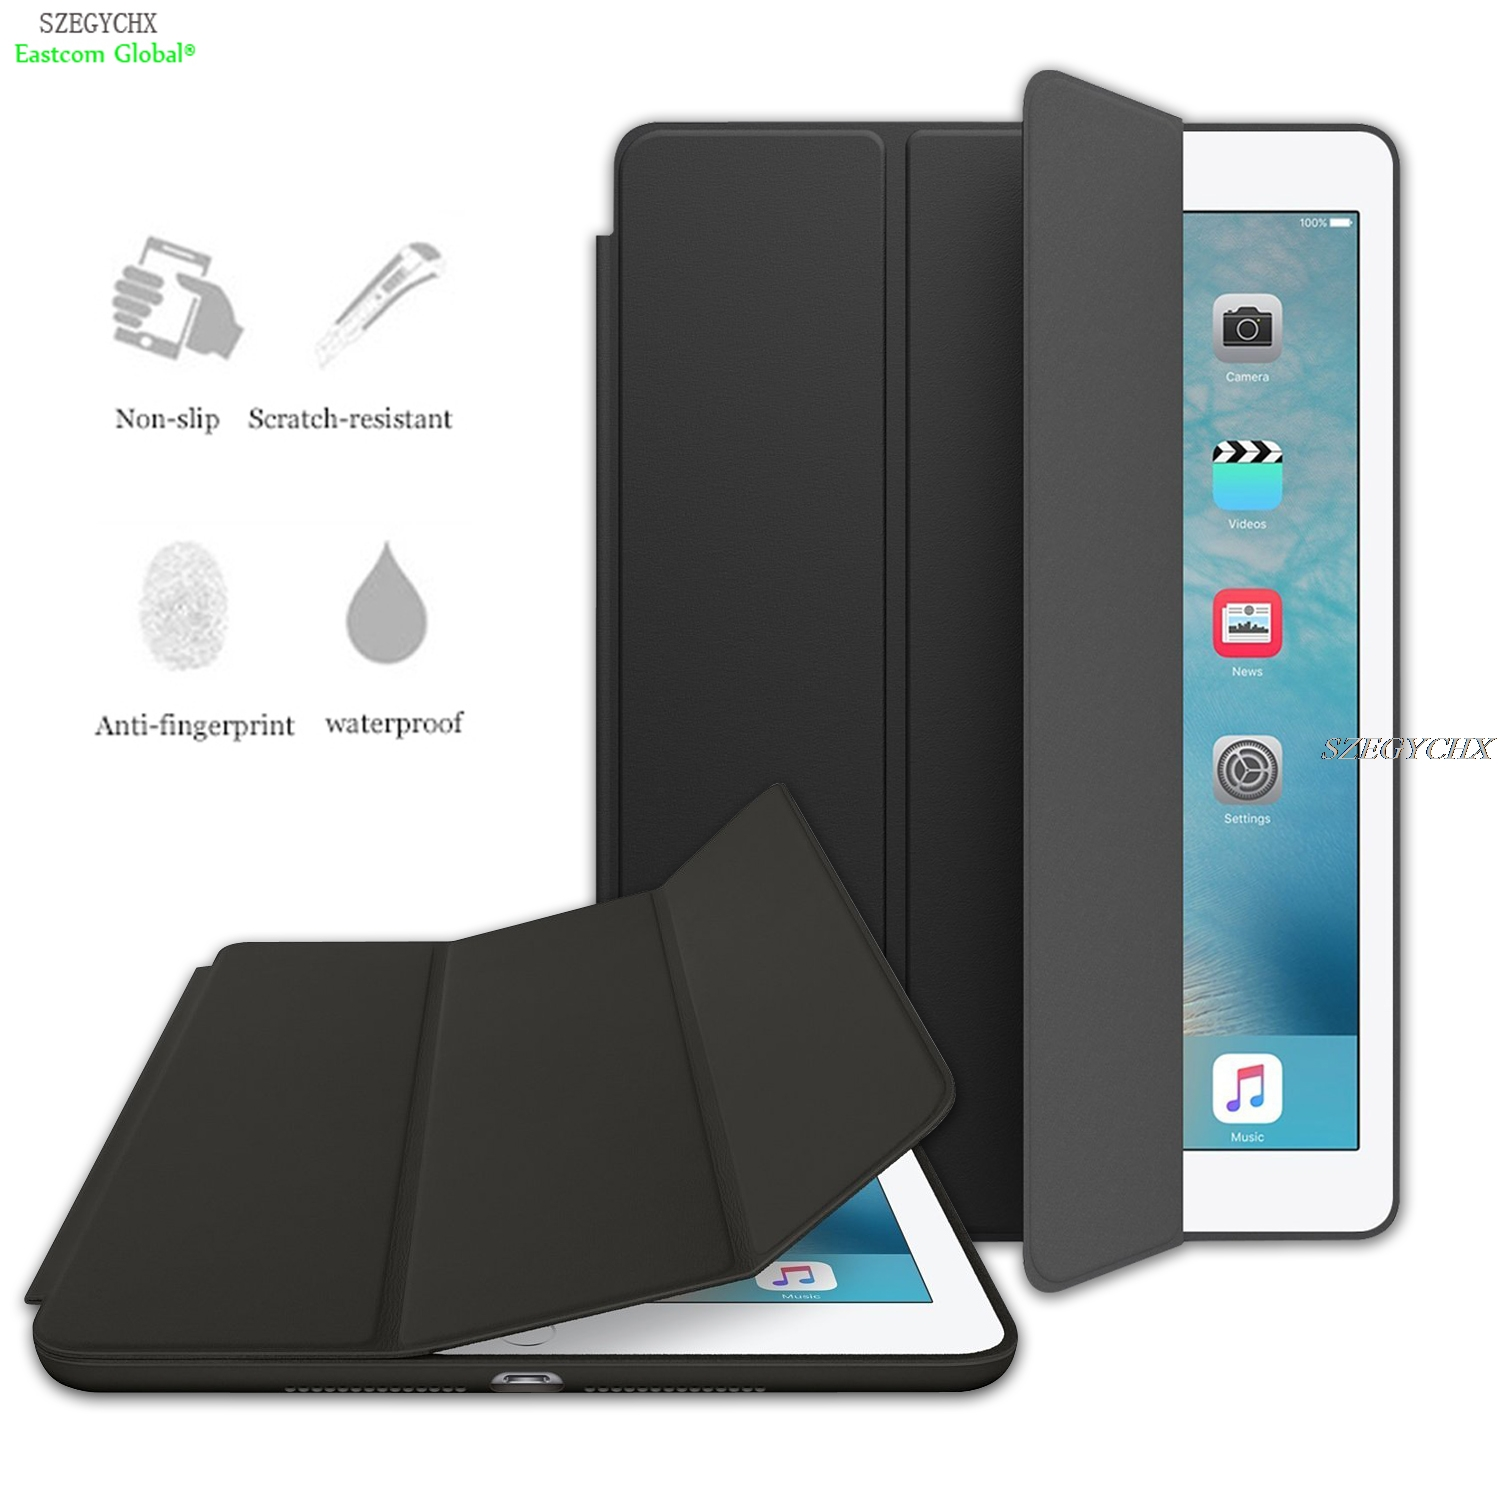 Case For apple iPad Air 1 Original 1:1 Ultra Slim Smart Cover Smart Stand For iPad 5 Auto Wake / Sleep with LOGO case for apple ipad mini 4 szegychx original 1 1 ultra slim smart cover stand for ipad case auto wake sleep with logo